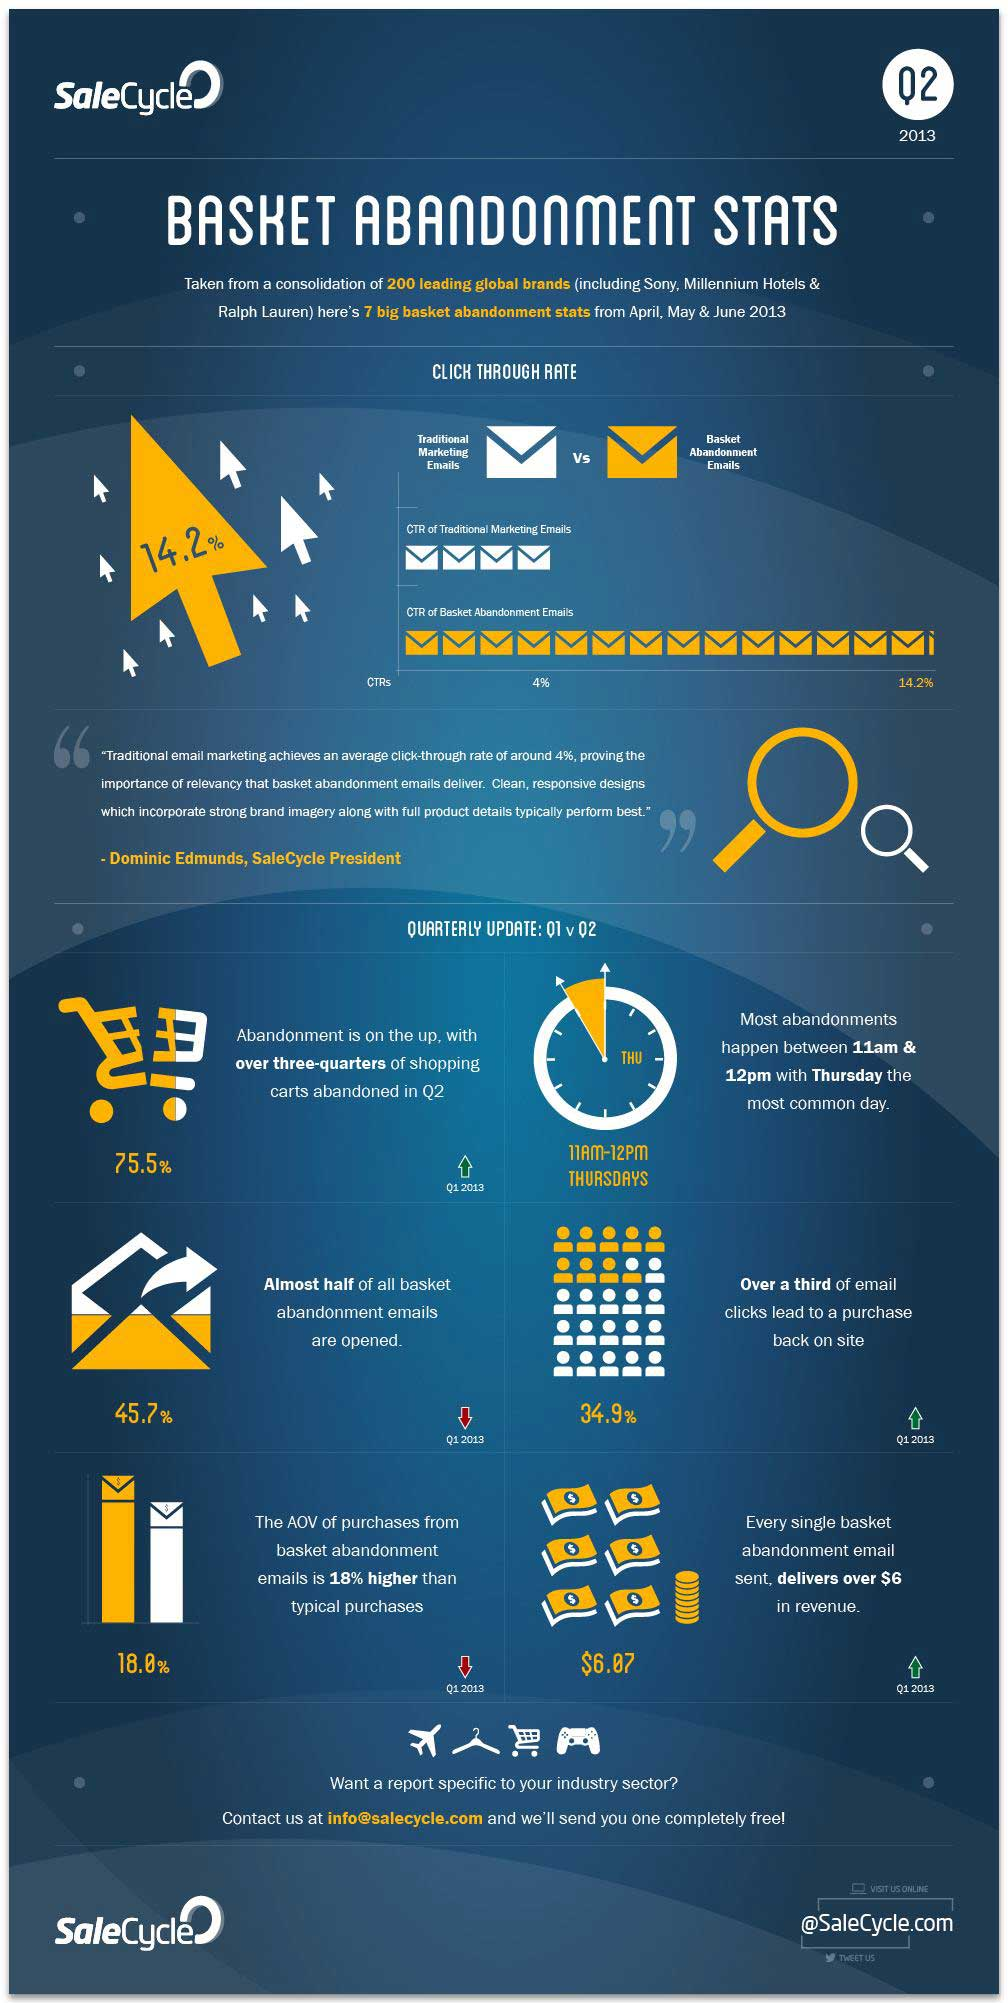 customer behavior online shopping cart abandonment rates infographic marketingprofs article. Black Bedroom Furniture Sets. Home Design Ideas